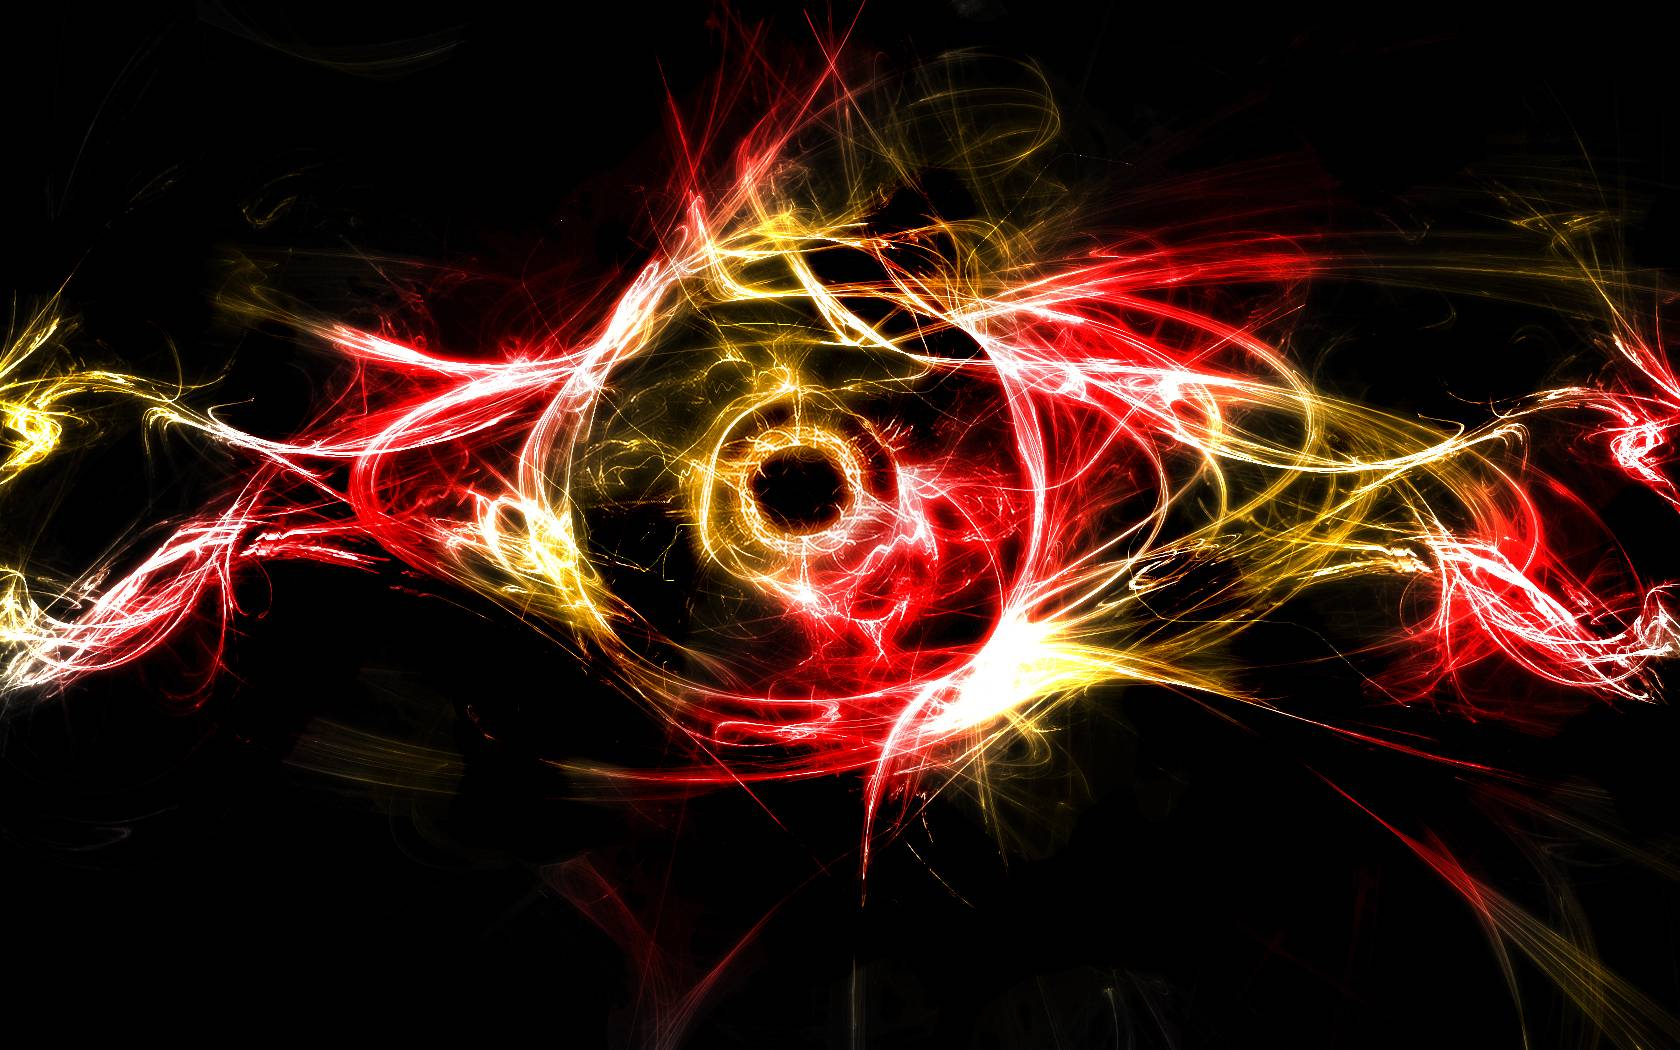 Abstract Desktop Backgrounds 1680x1050